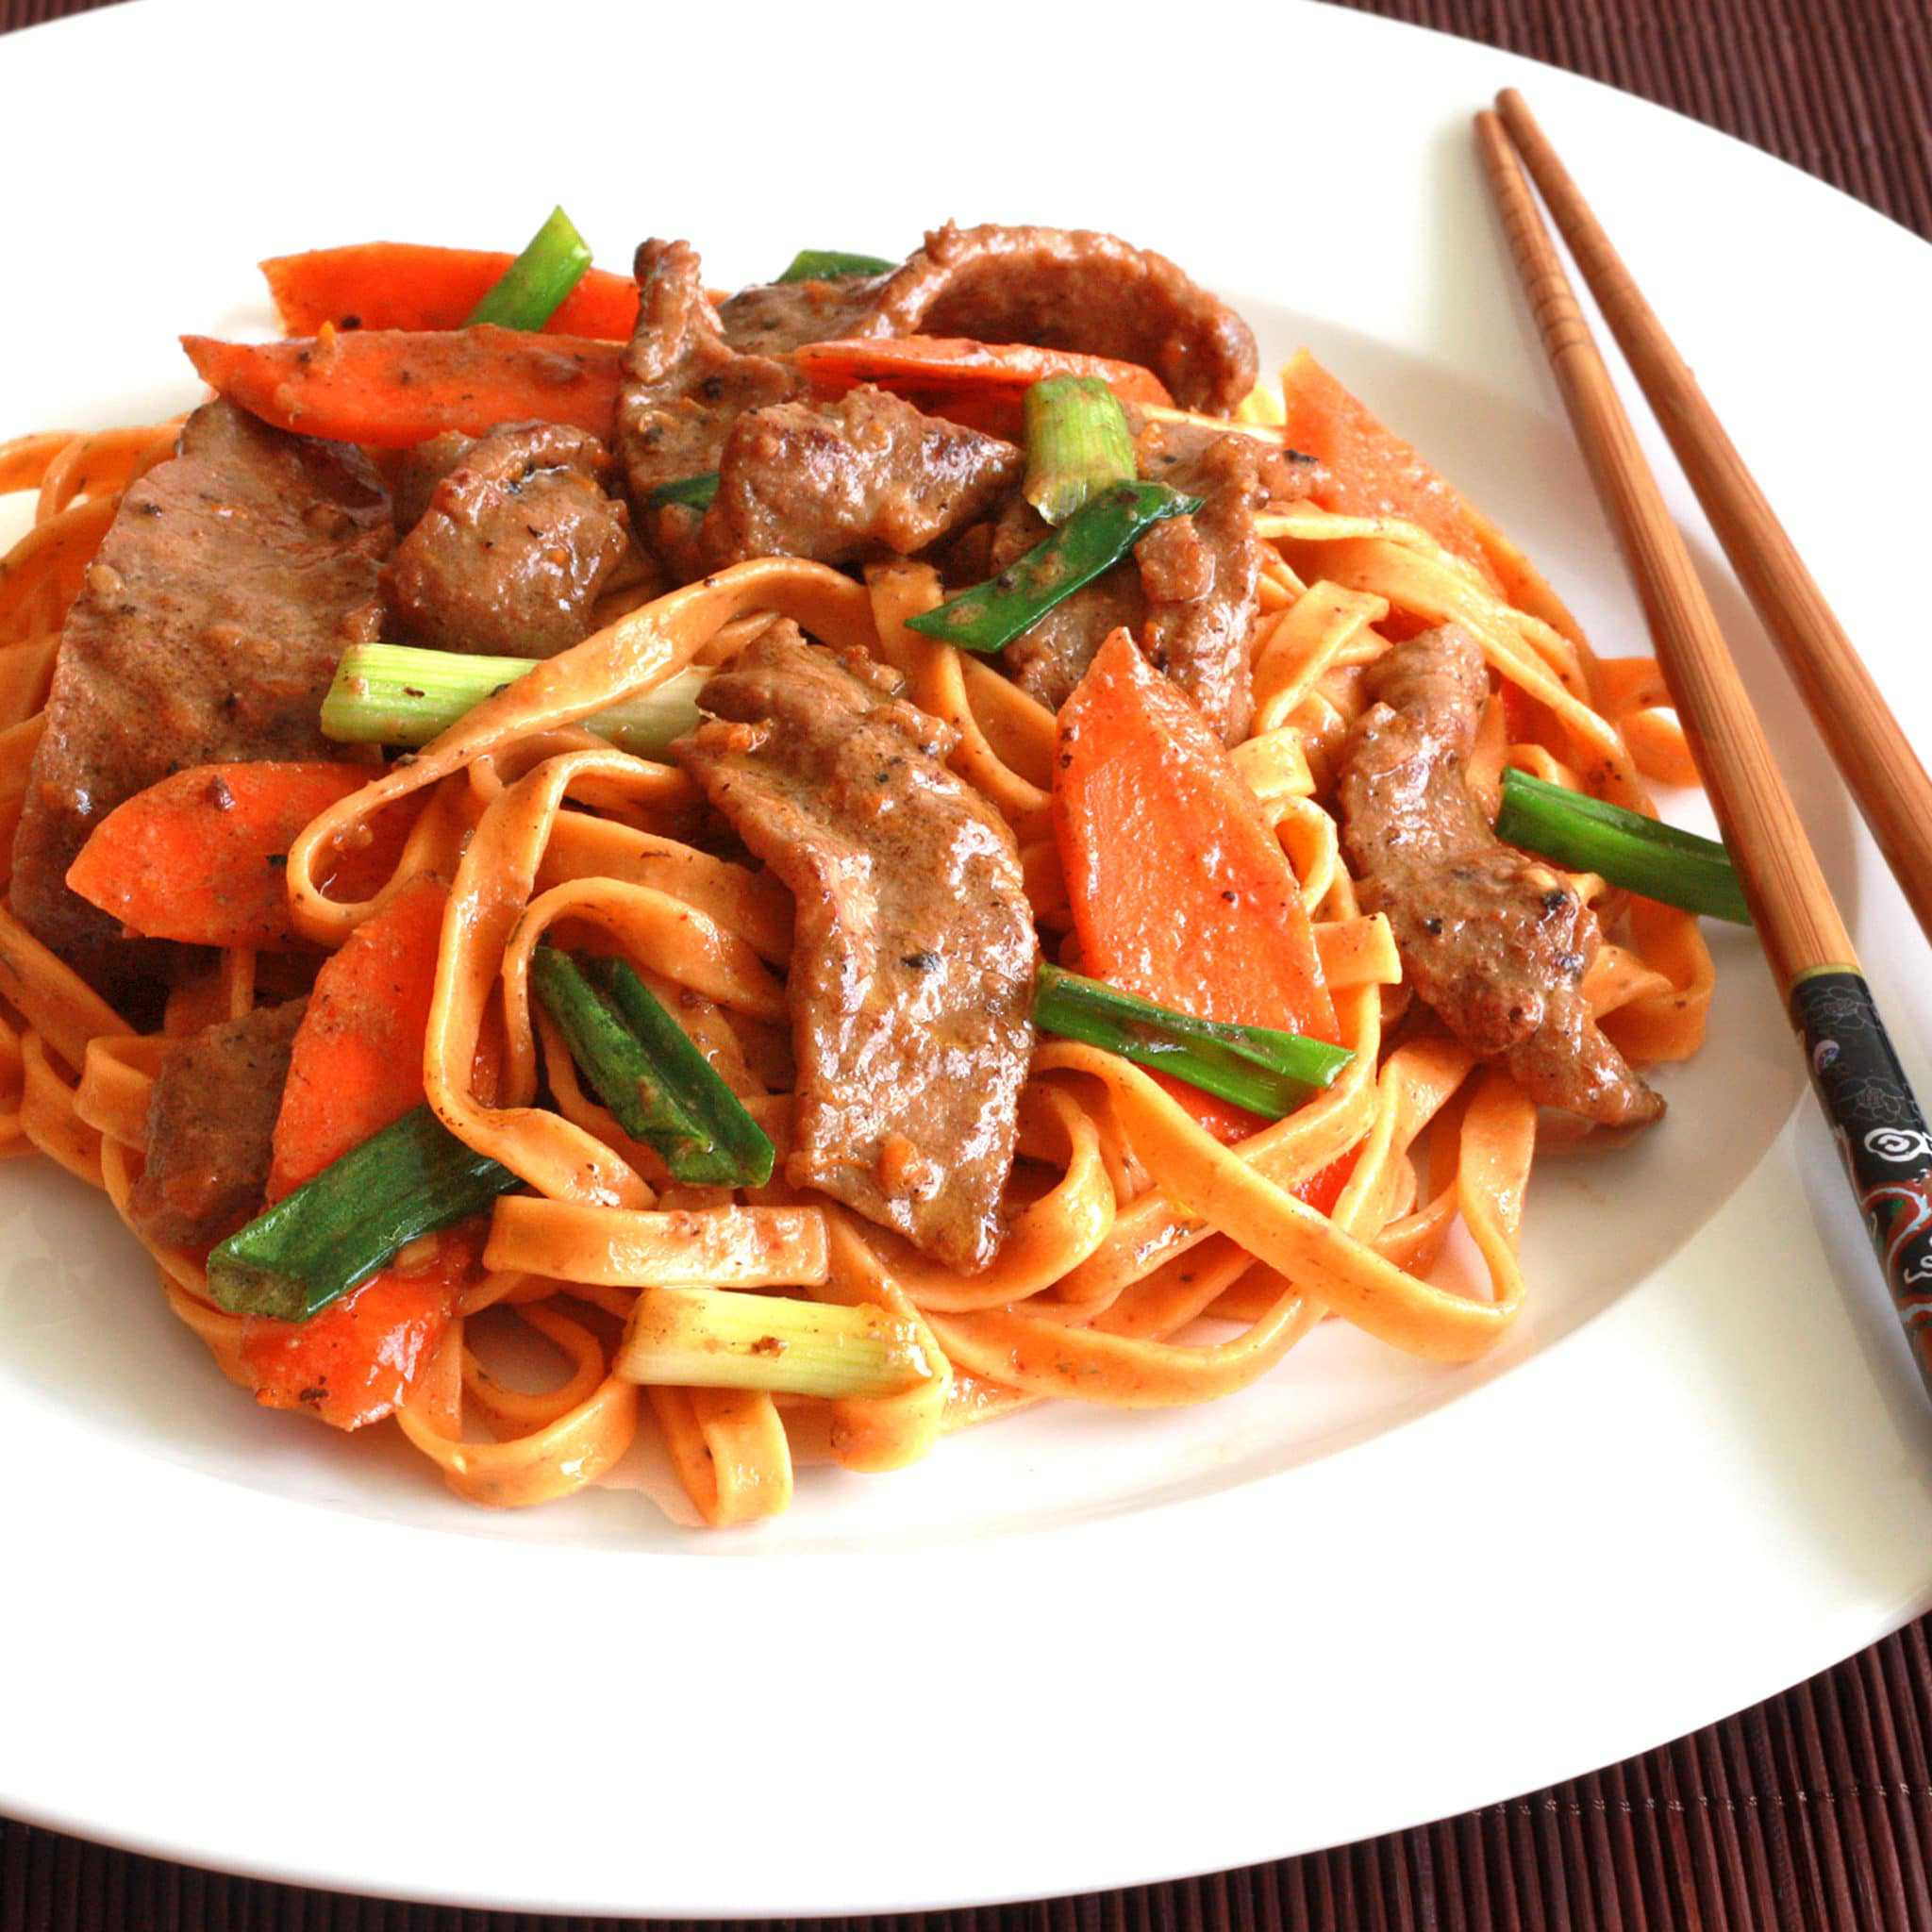 orange beef recipe szechuan best authentic Chinese fast easy takeout